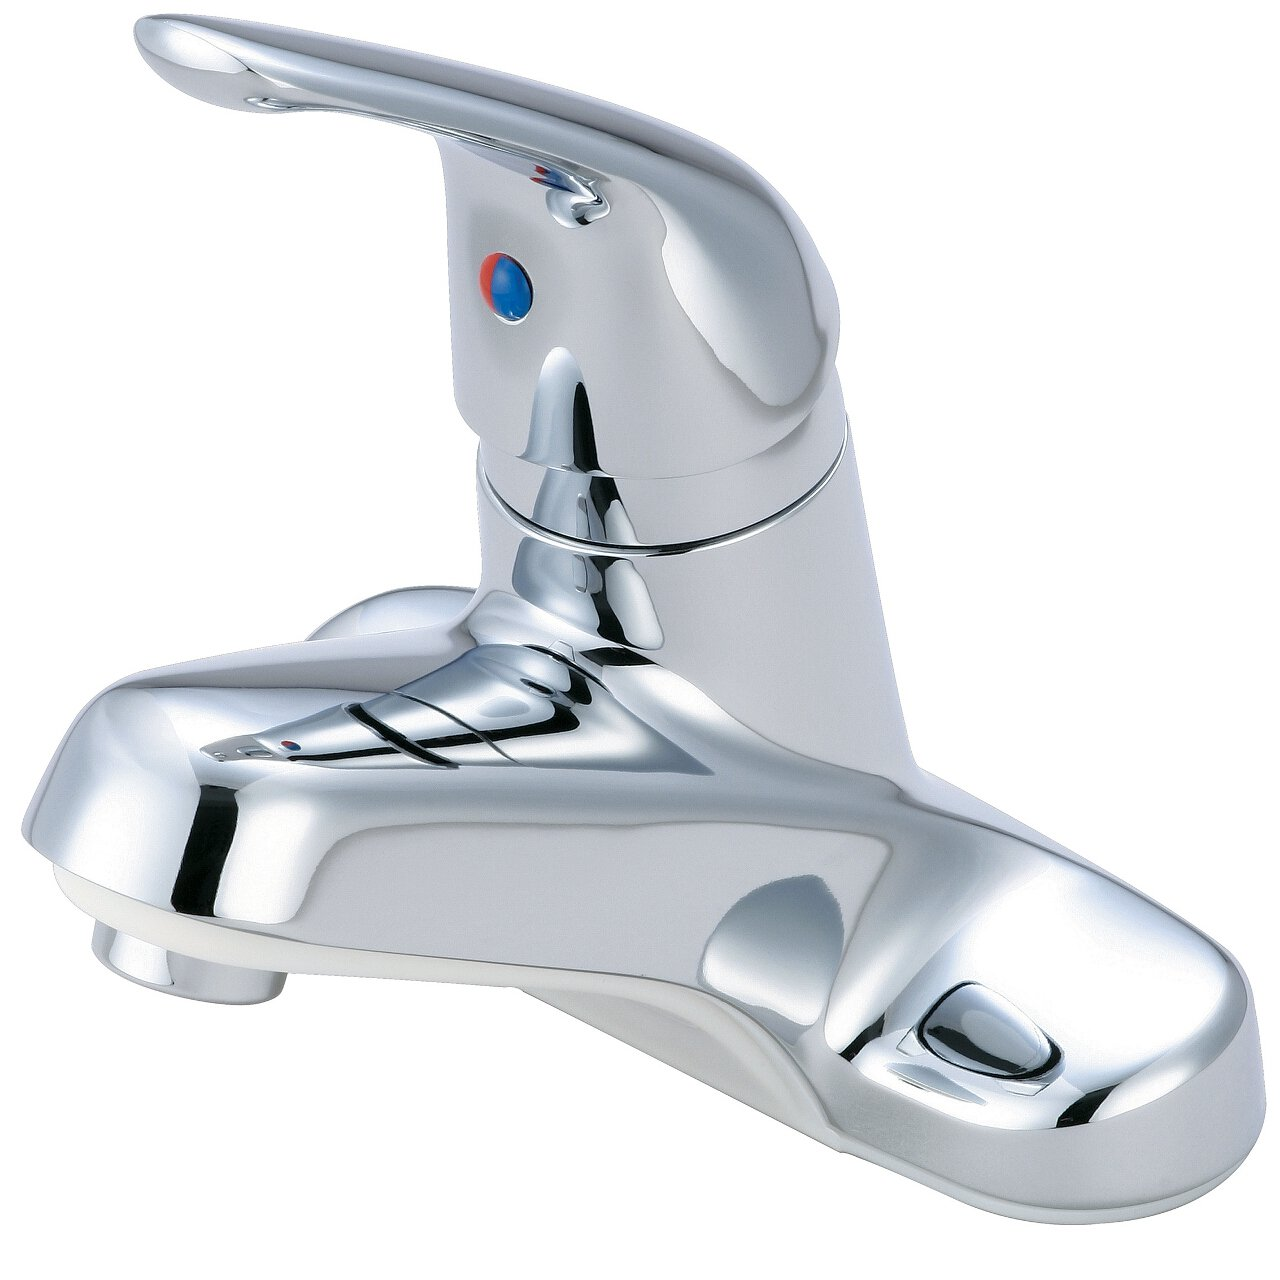 Olympia Faucets L-6161 Single Handle Lavatory Faucet, Chrome Finish ...